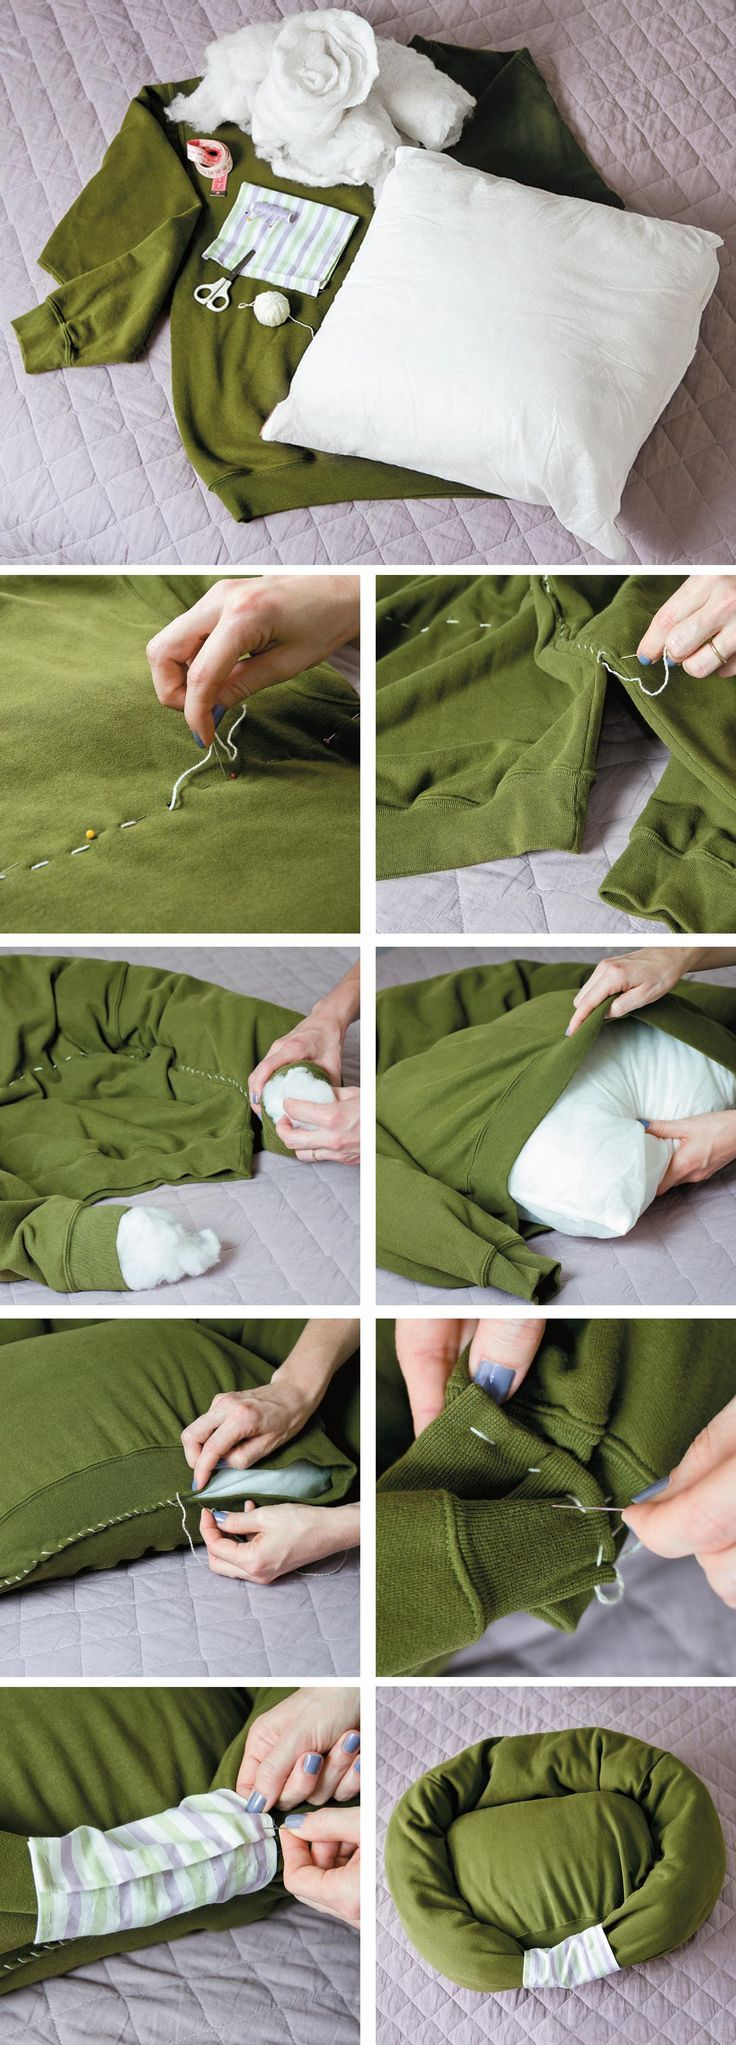 15 Ideas for diy dog bed sweatshirt pets Diy Dog Bed, Diy Bed, Dog Pillow Bed, Animal Projects, Dog Sweaters, Cat Furniture, Pet Beds, Diy Stuffed Animals, Cat Toys